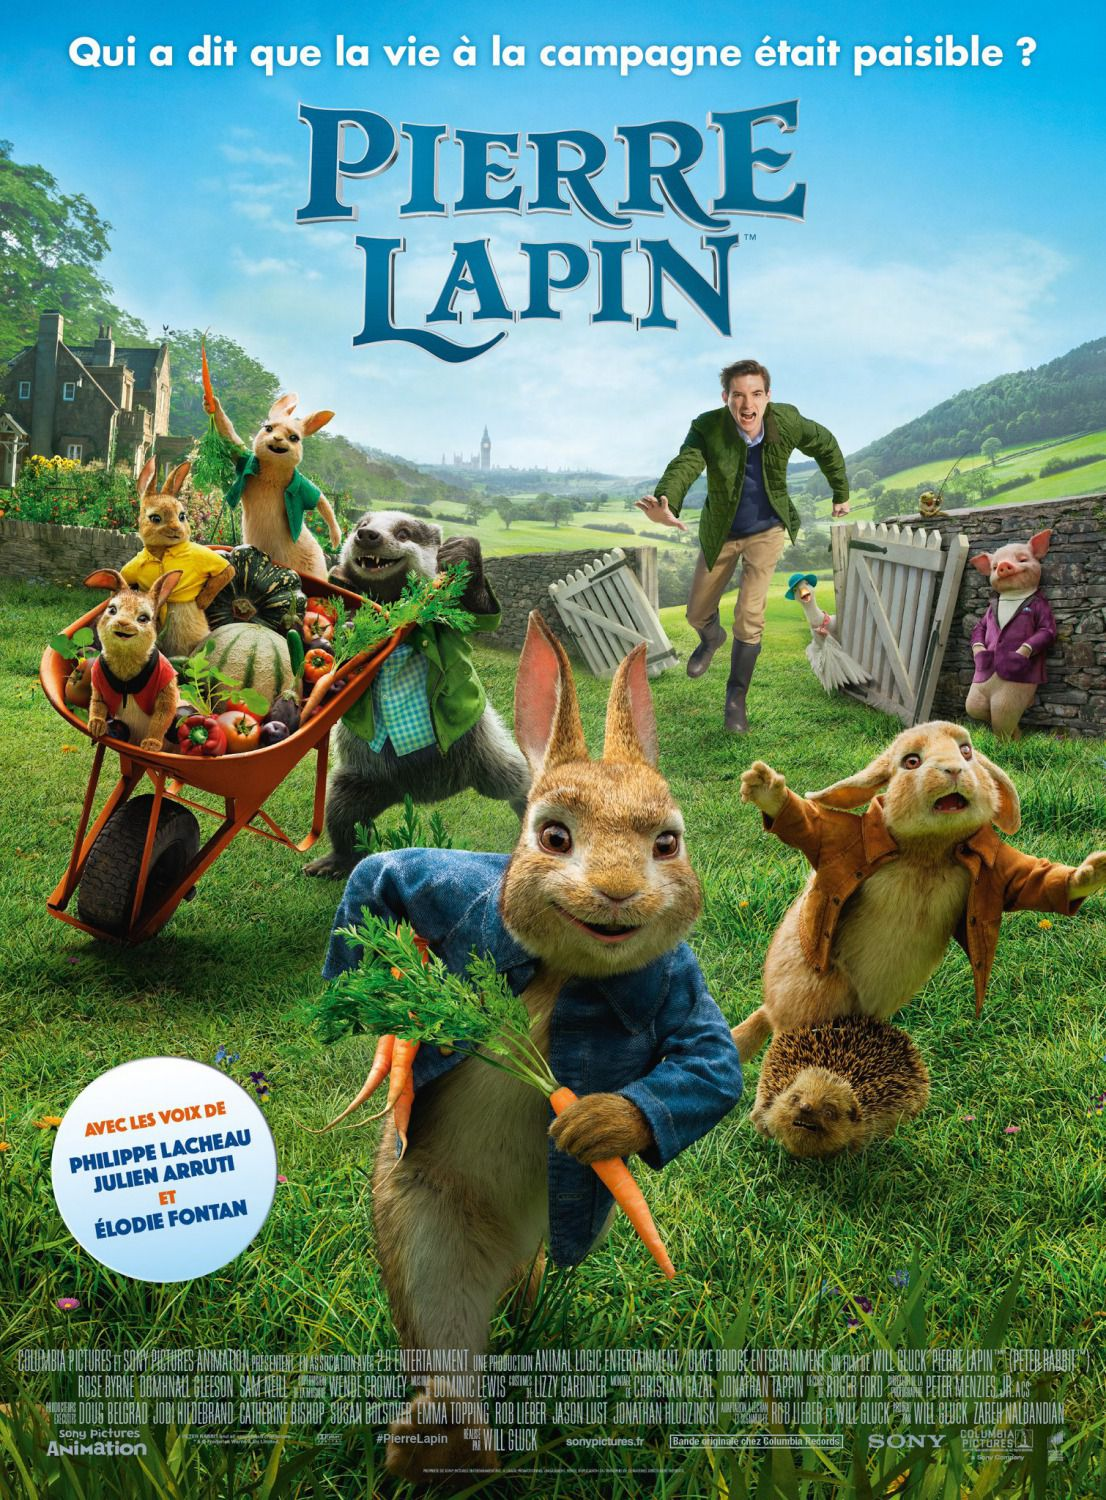 Peter Rabbit - Pierre Lapin - James Corden, Rose Byrne, Domhnall Gleeson, Daisy Ridley